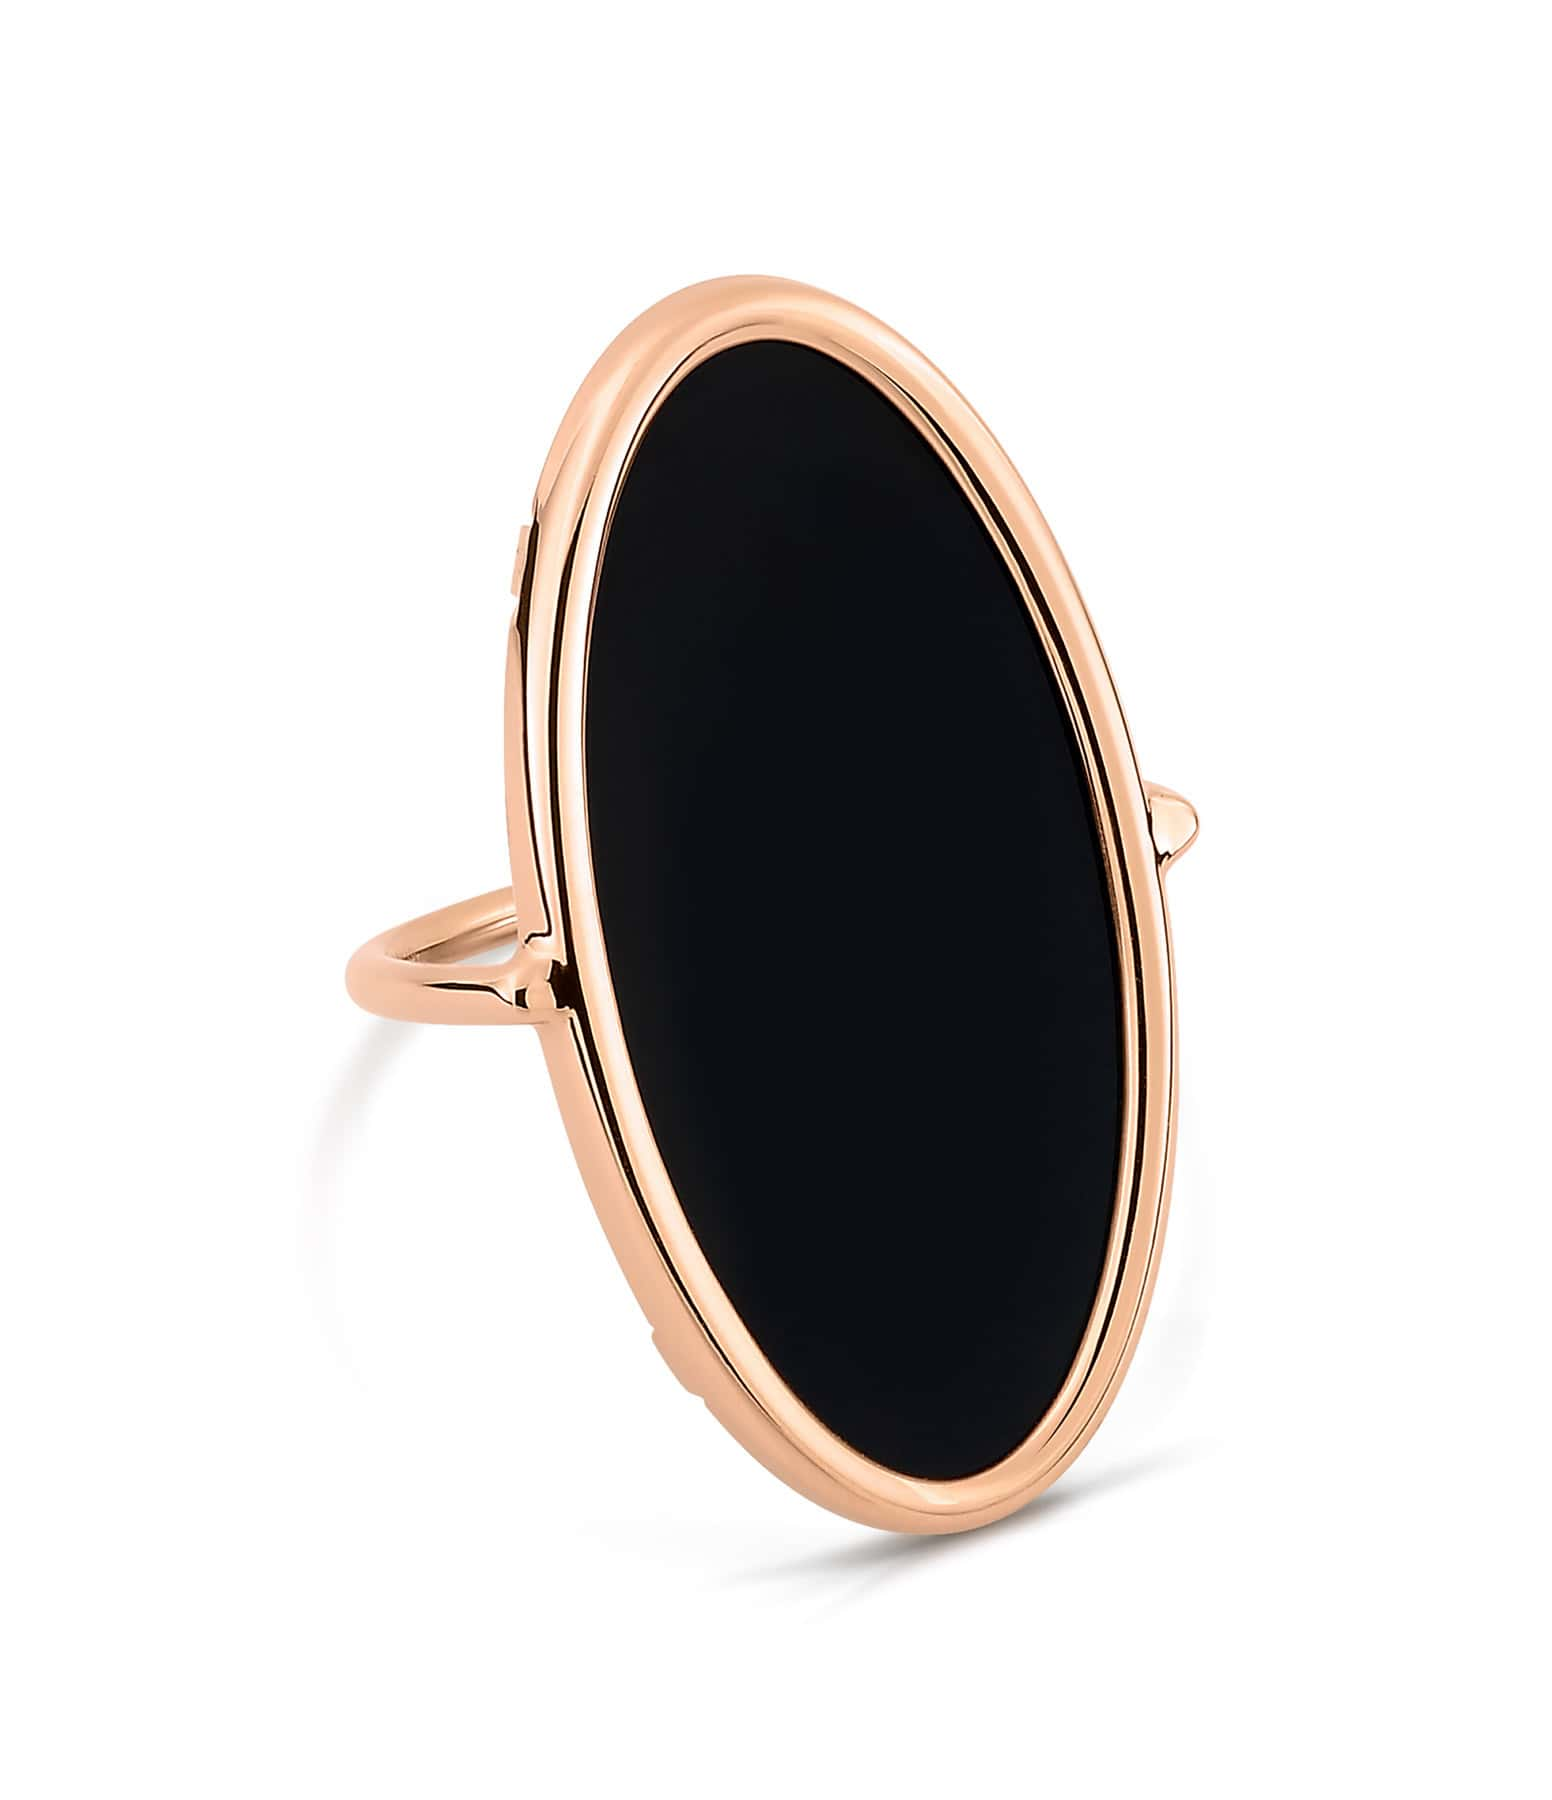 GINETTE_NY - Bague Ellipse Or Rose Onyx